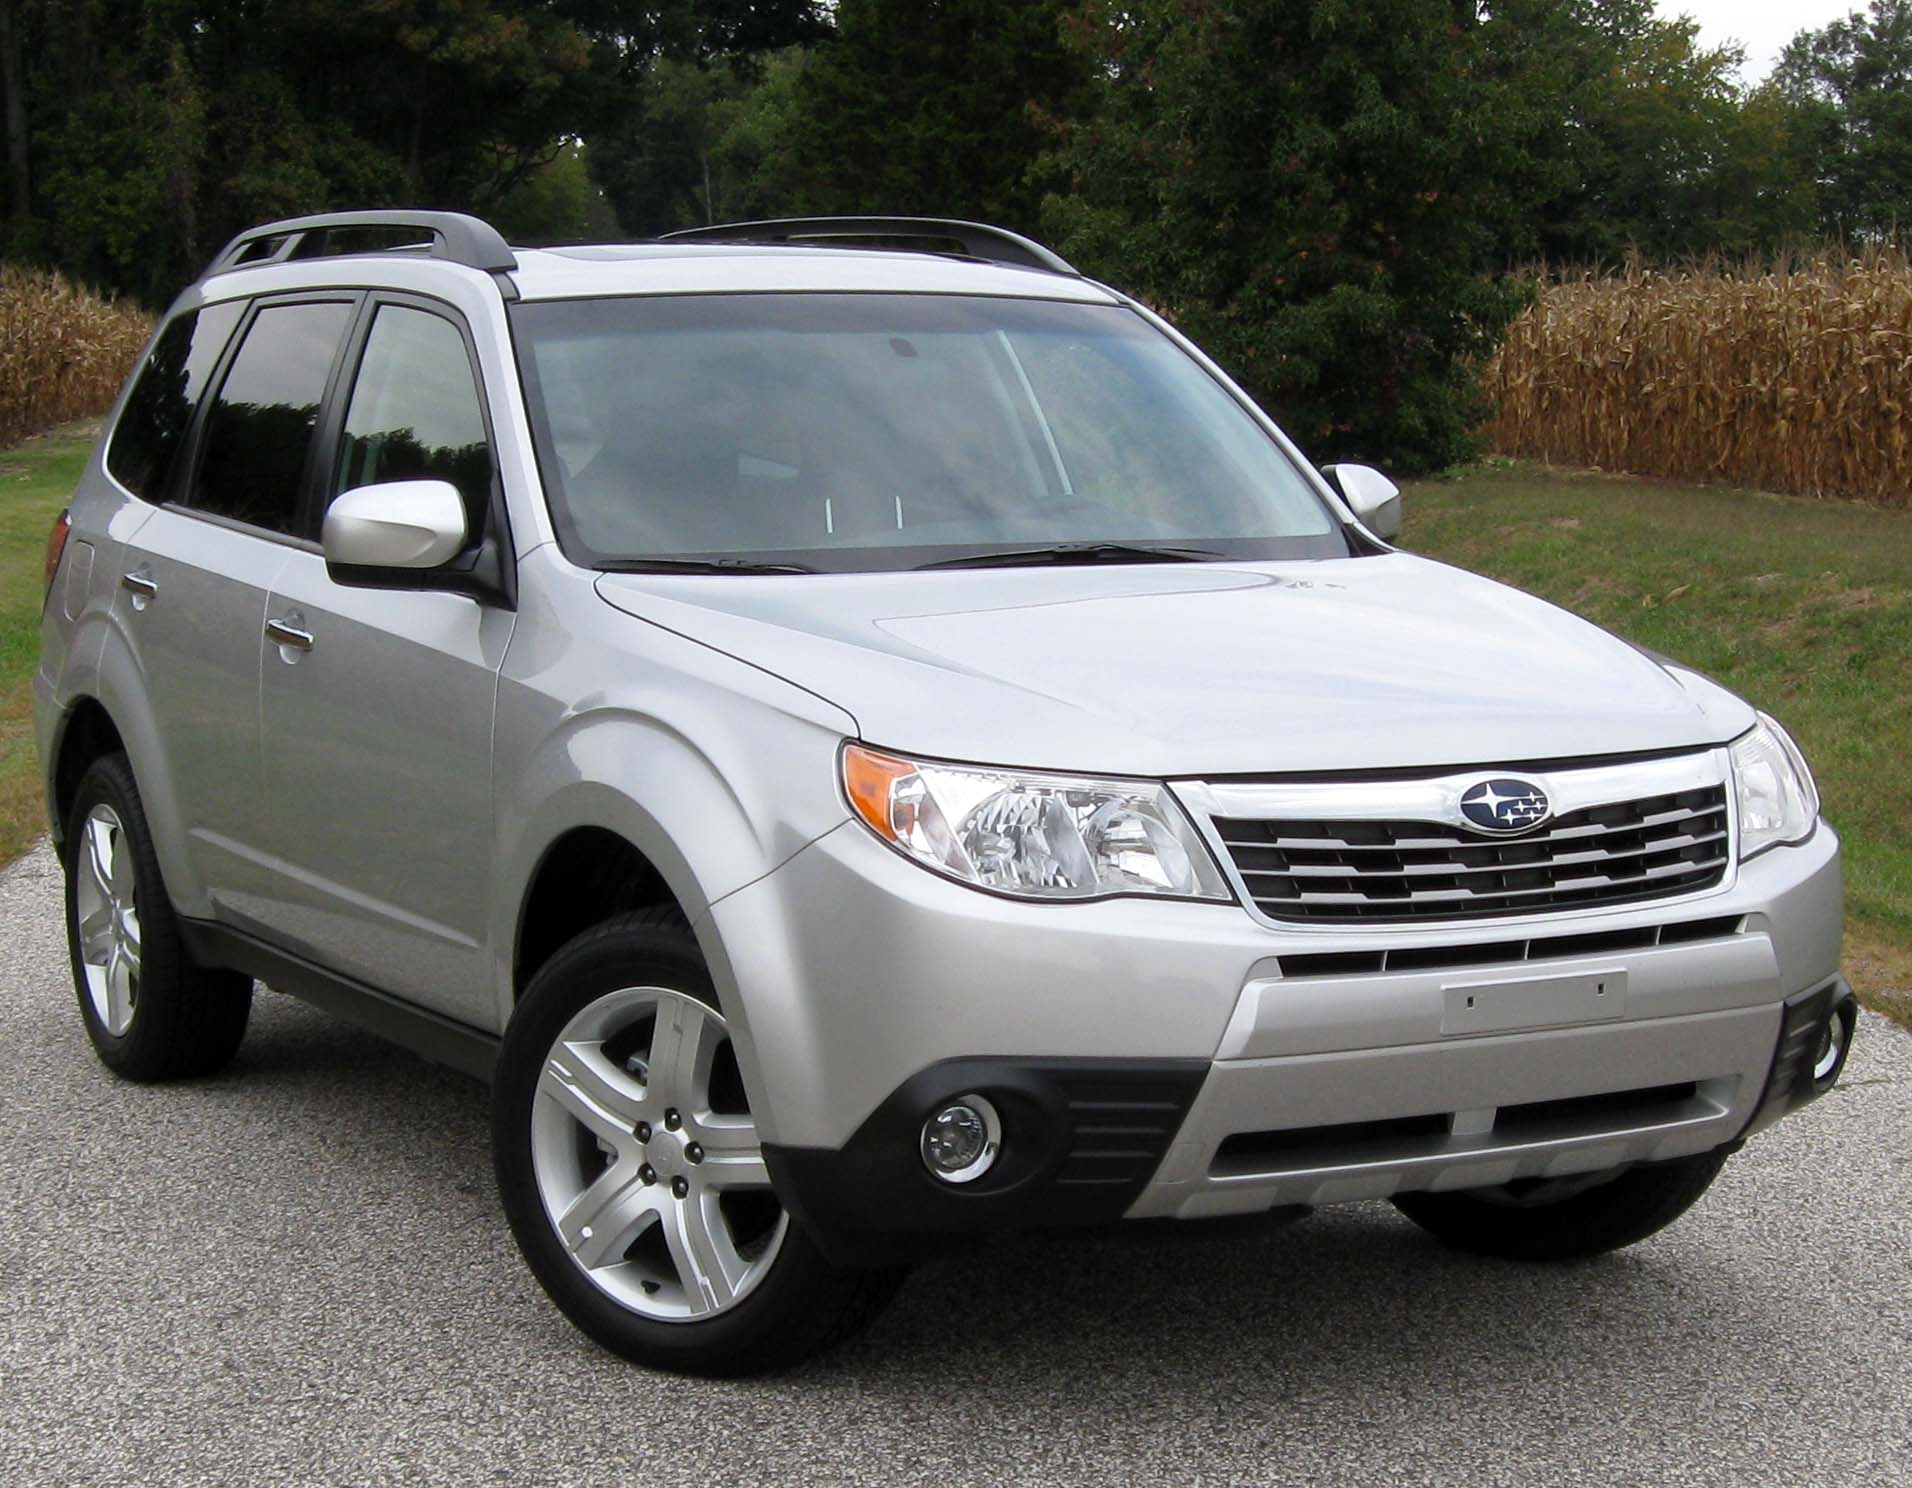 File:2010 Subaru Forester 2.5X Limited 6 -- 10-02-2009.jpg ...